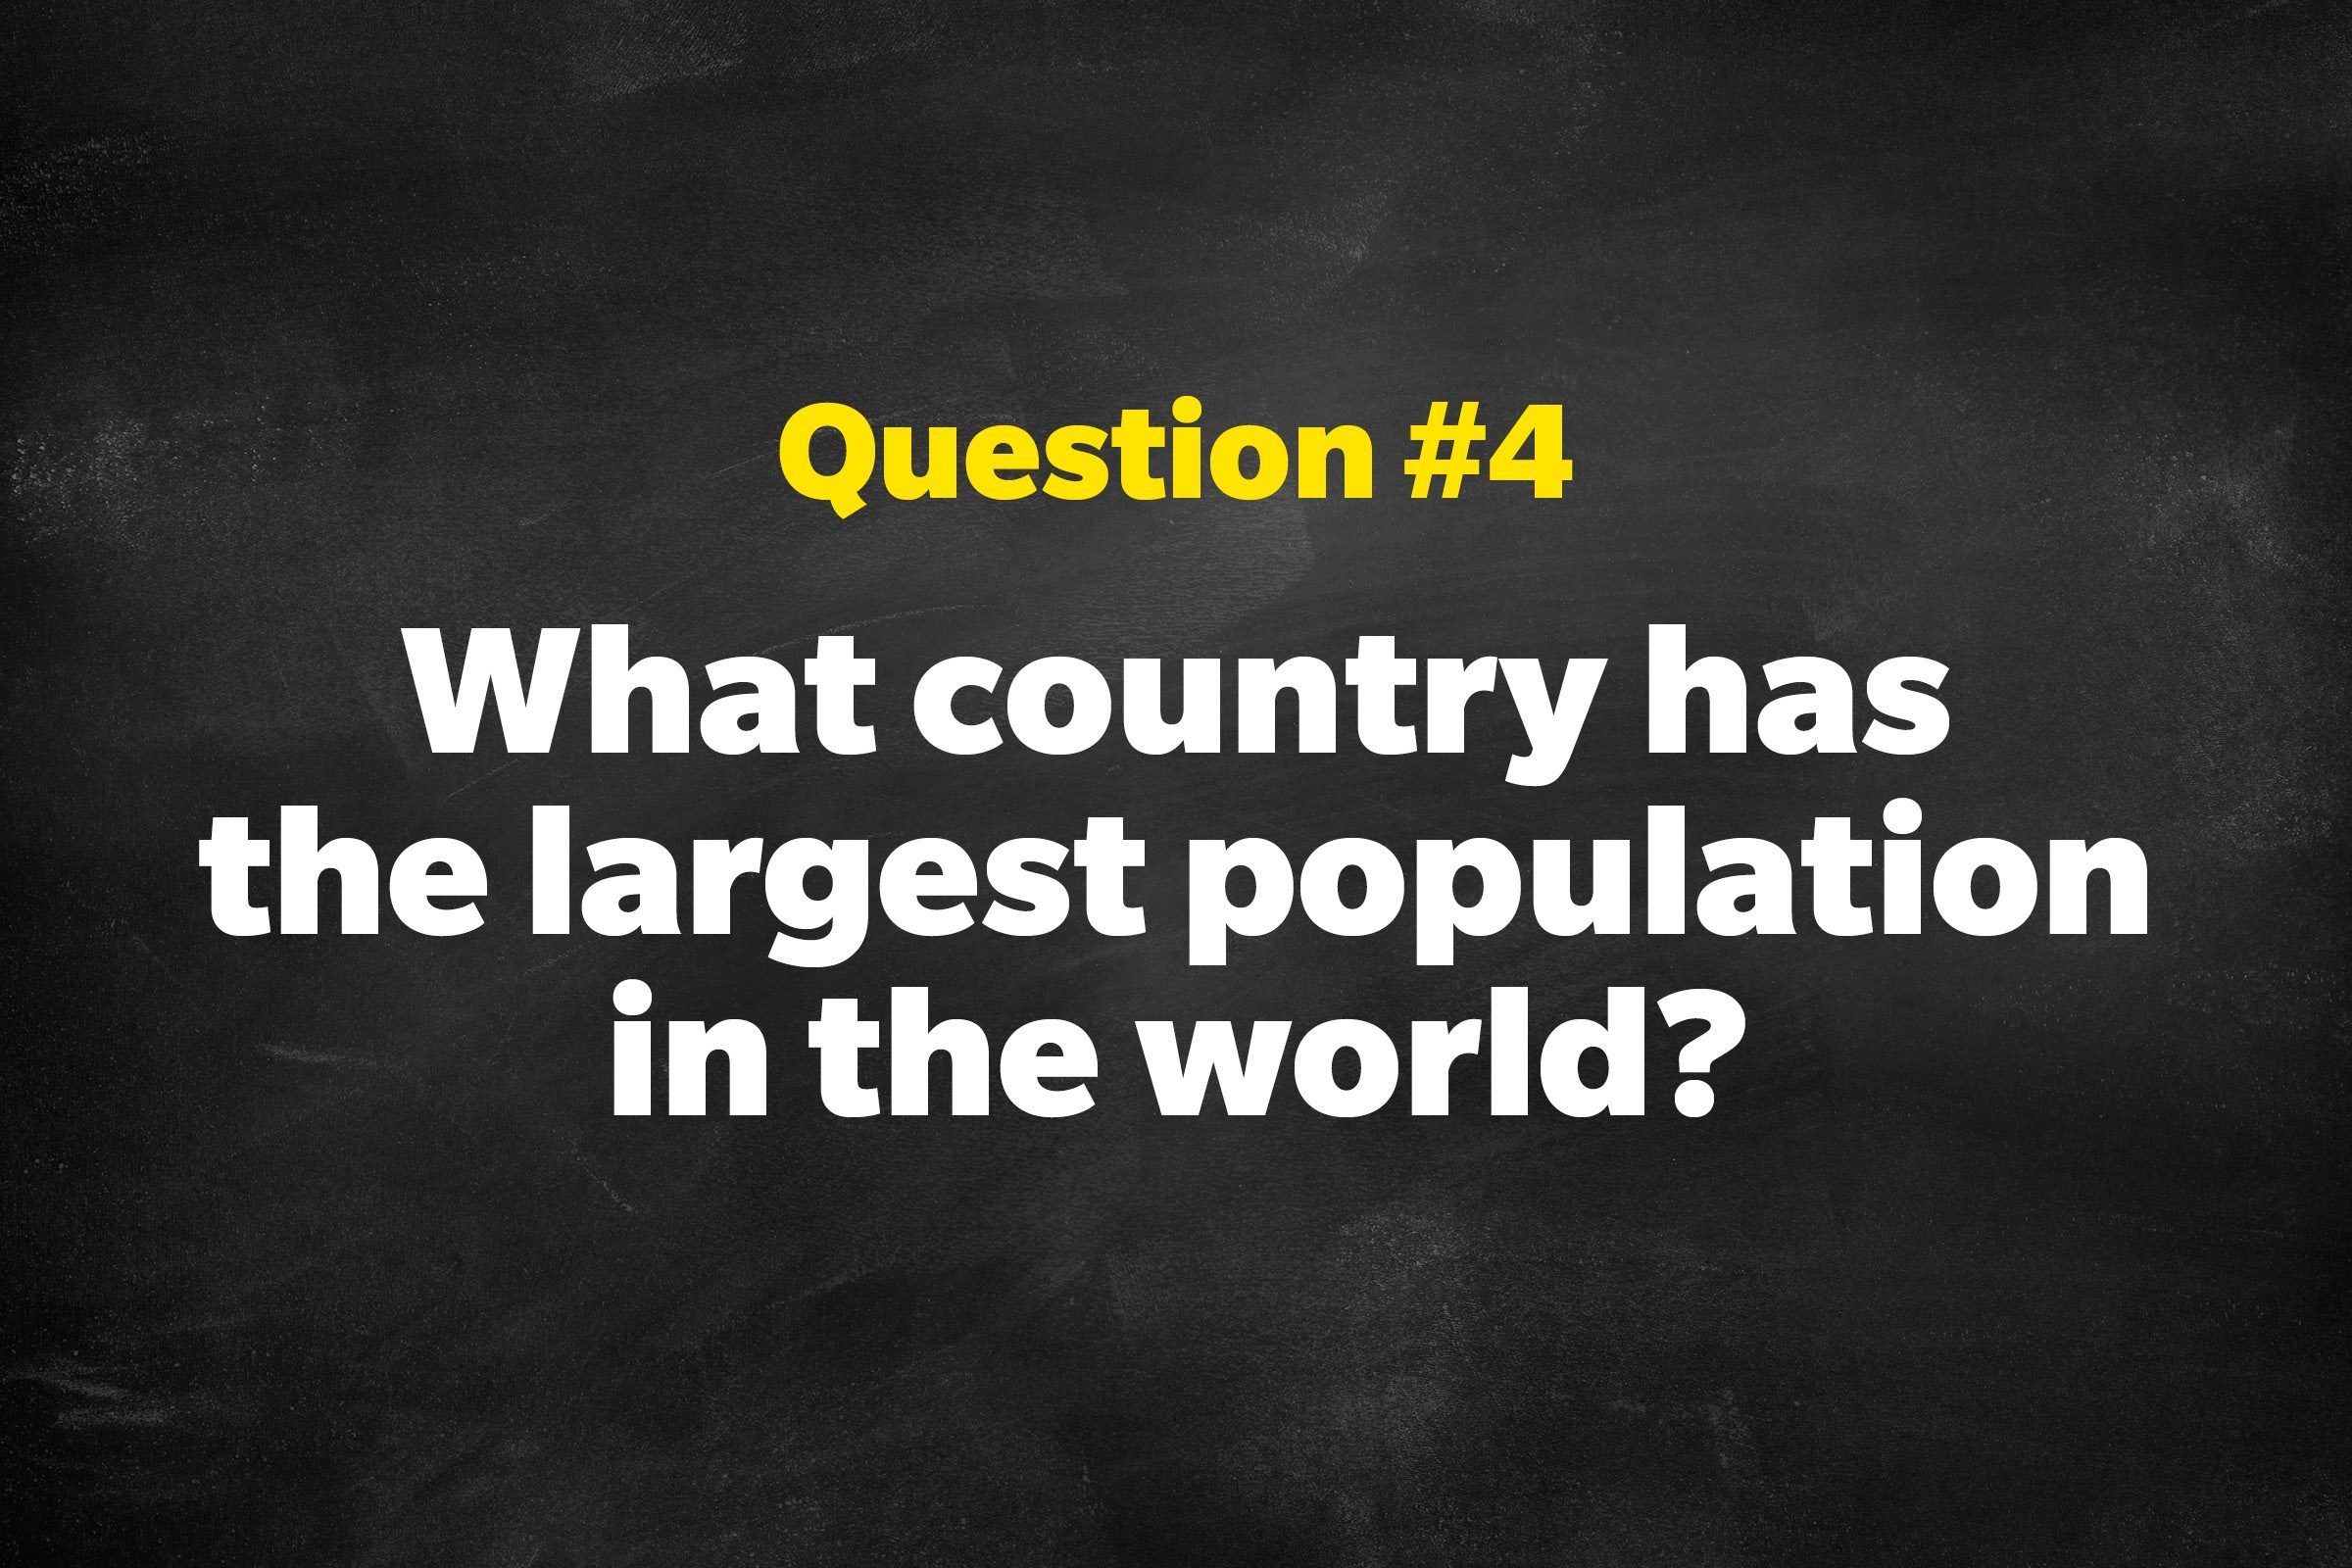 Question #4: What country has the largest population in the world?